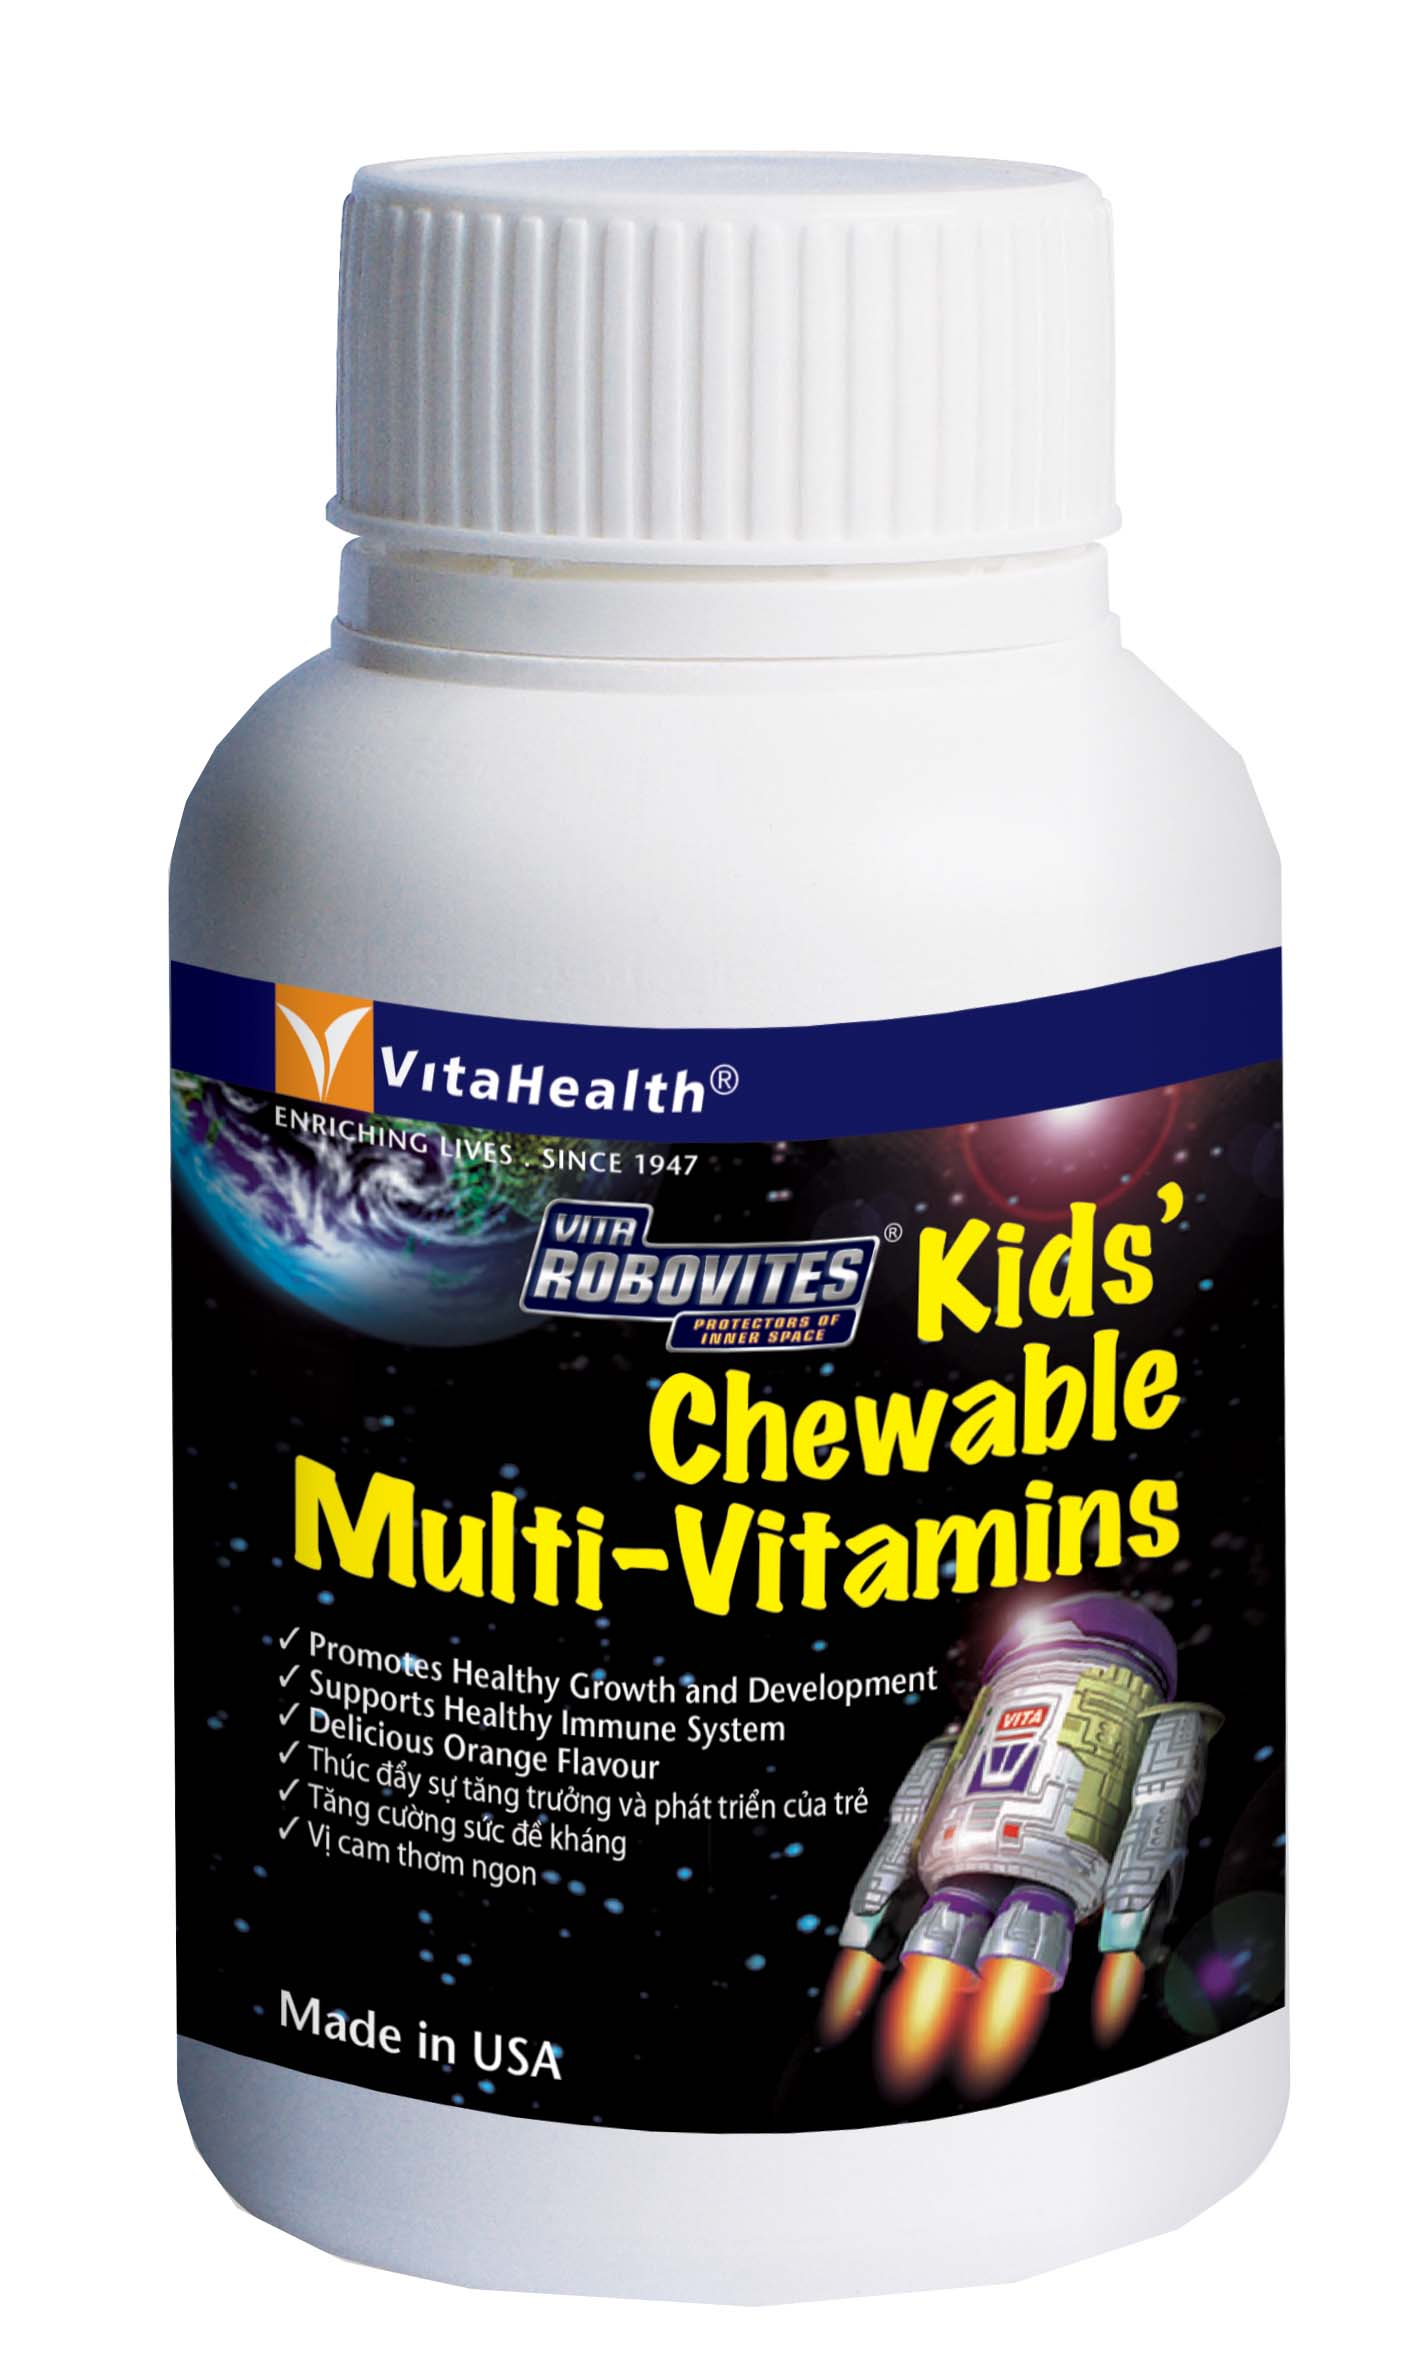 Food Supplement VH Robovites Kids' Chewable Multi-Vitamins